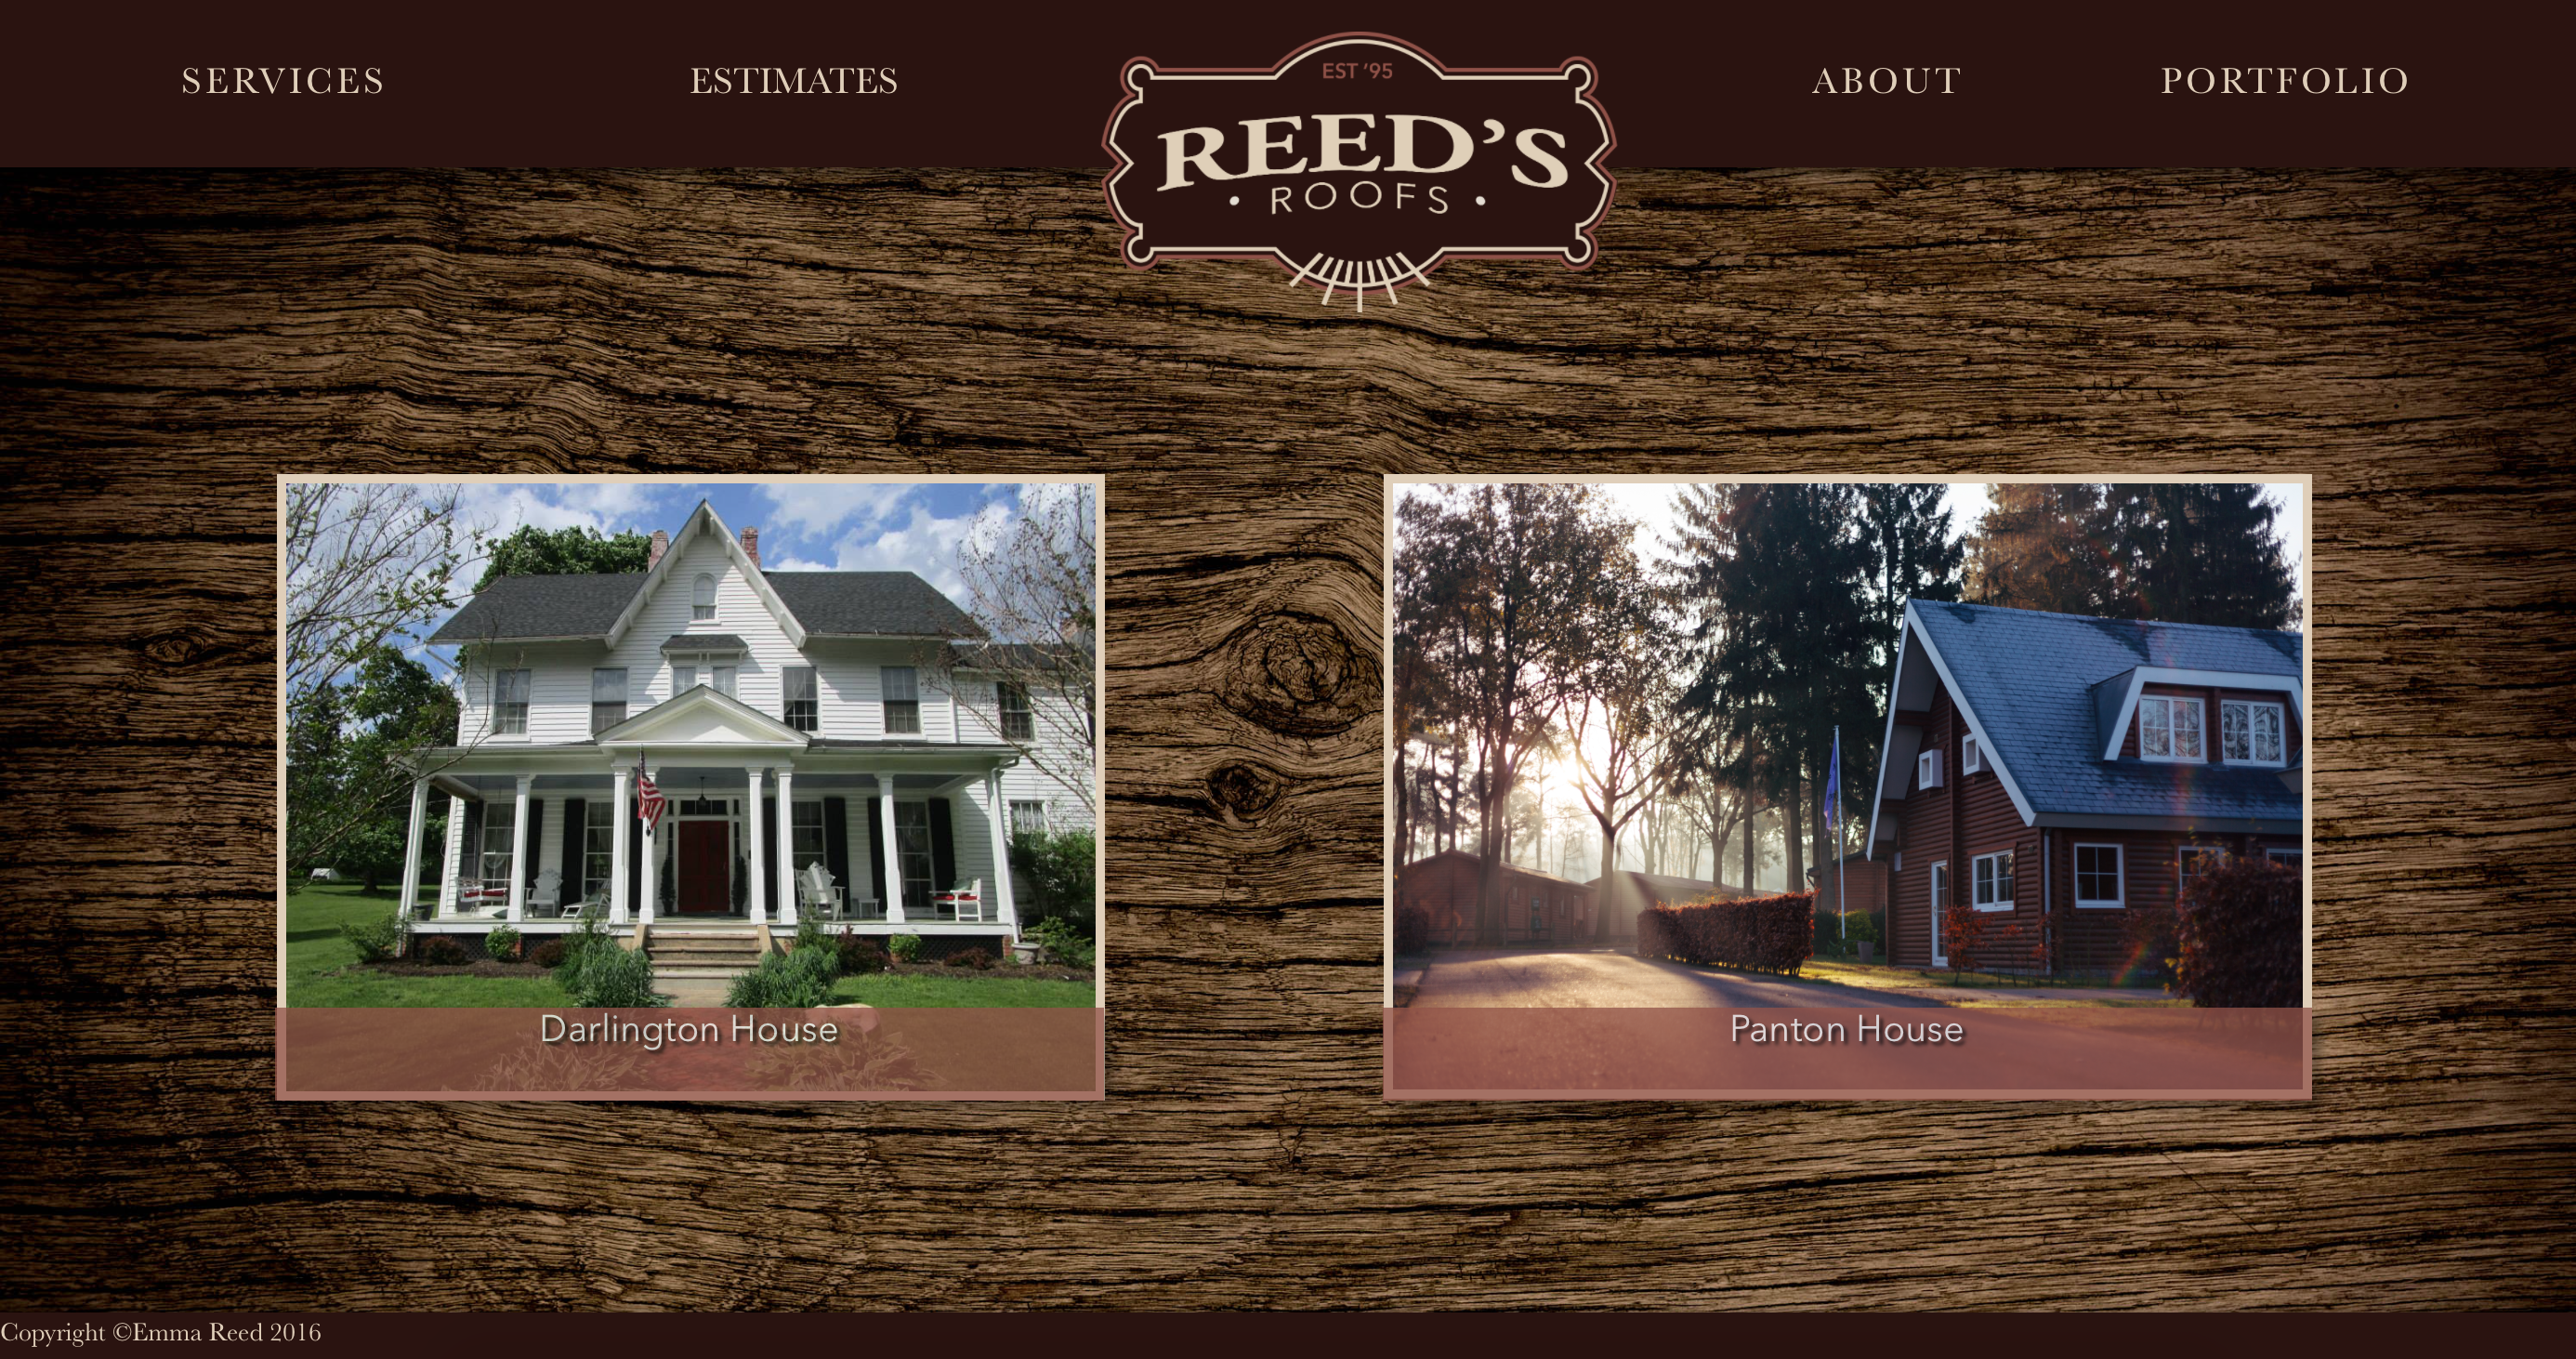 Reed's Roofs Gallery